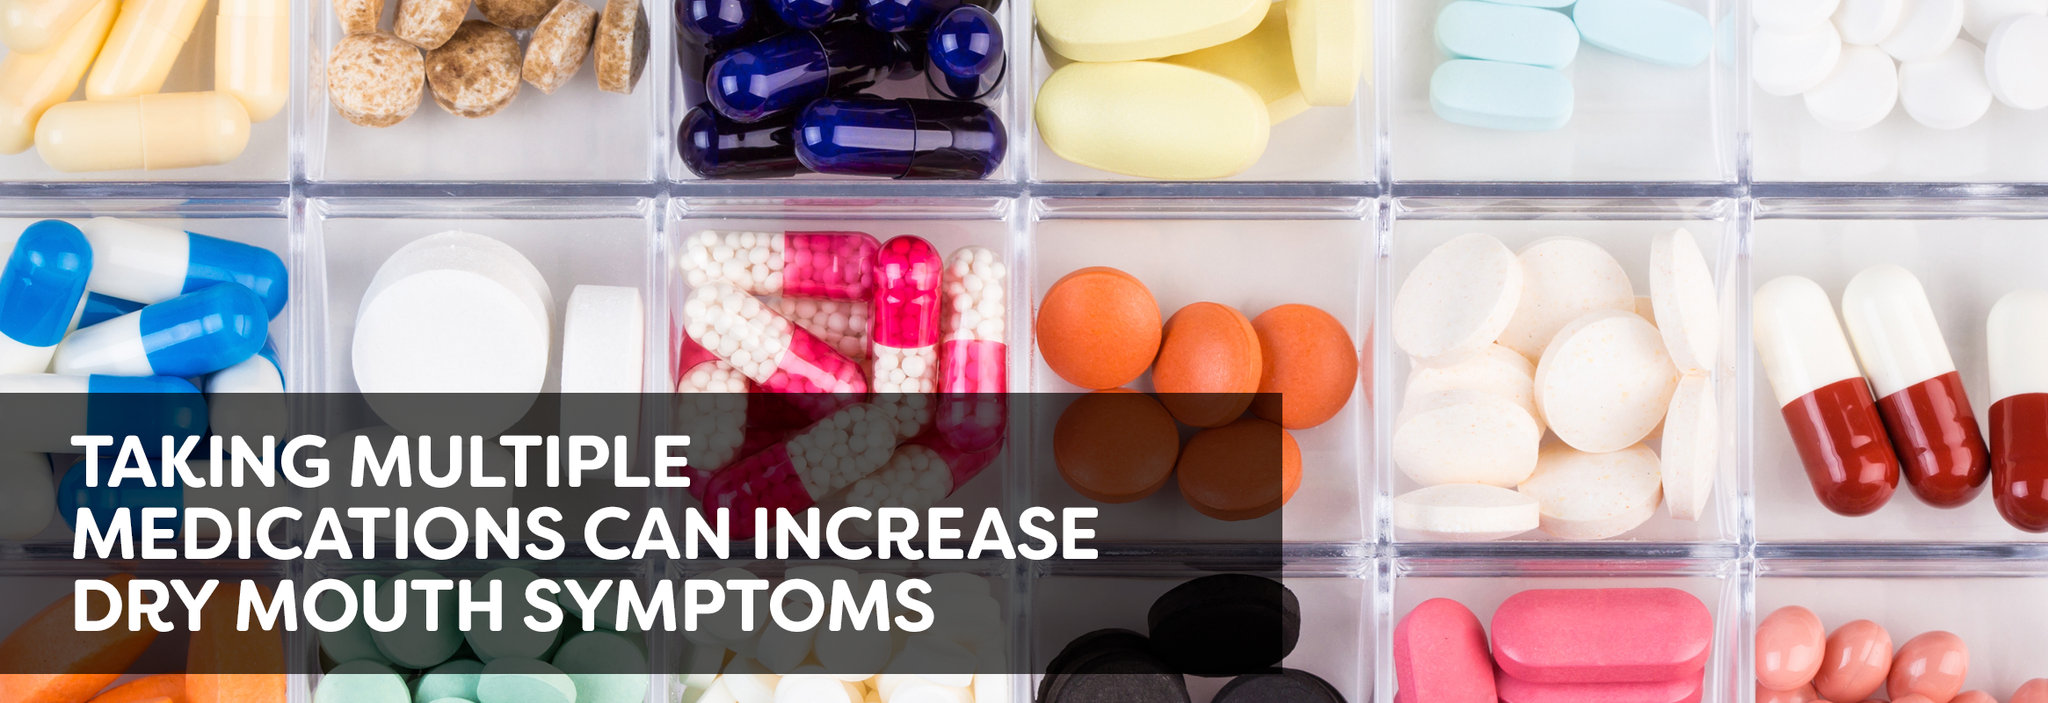 Taking multiple medications can increase dry mouth symptoms